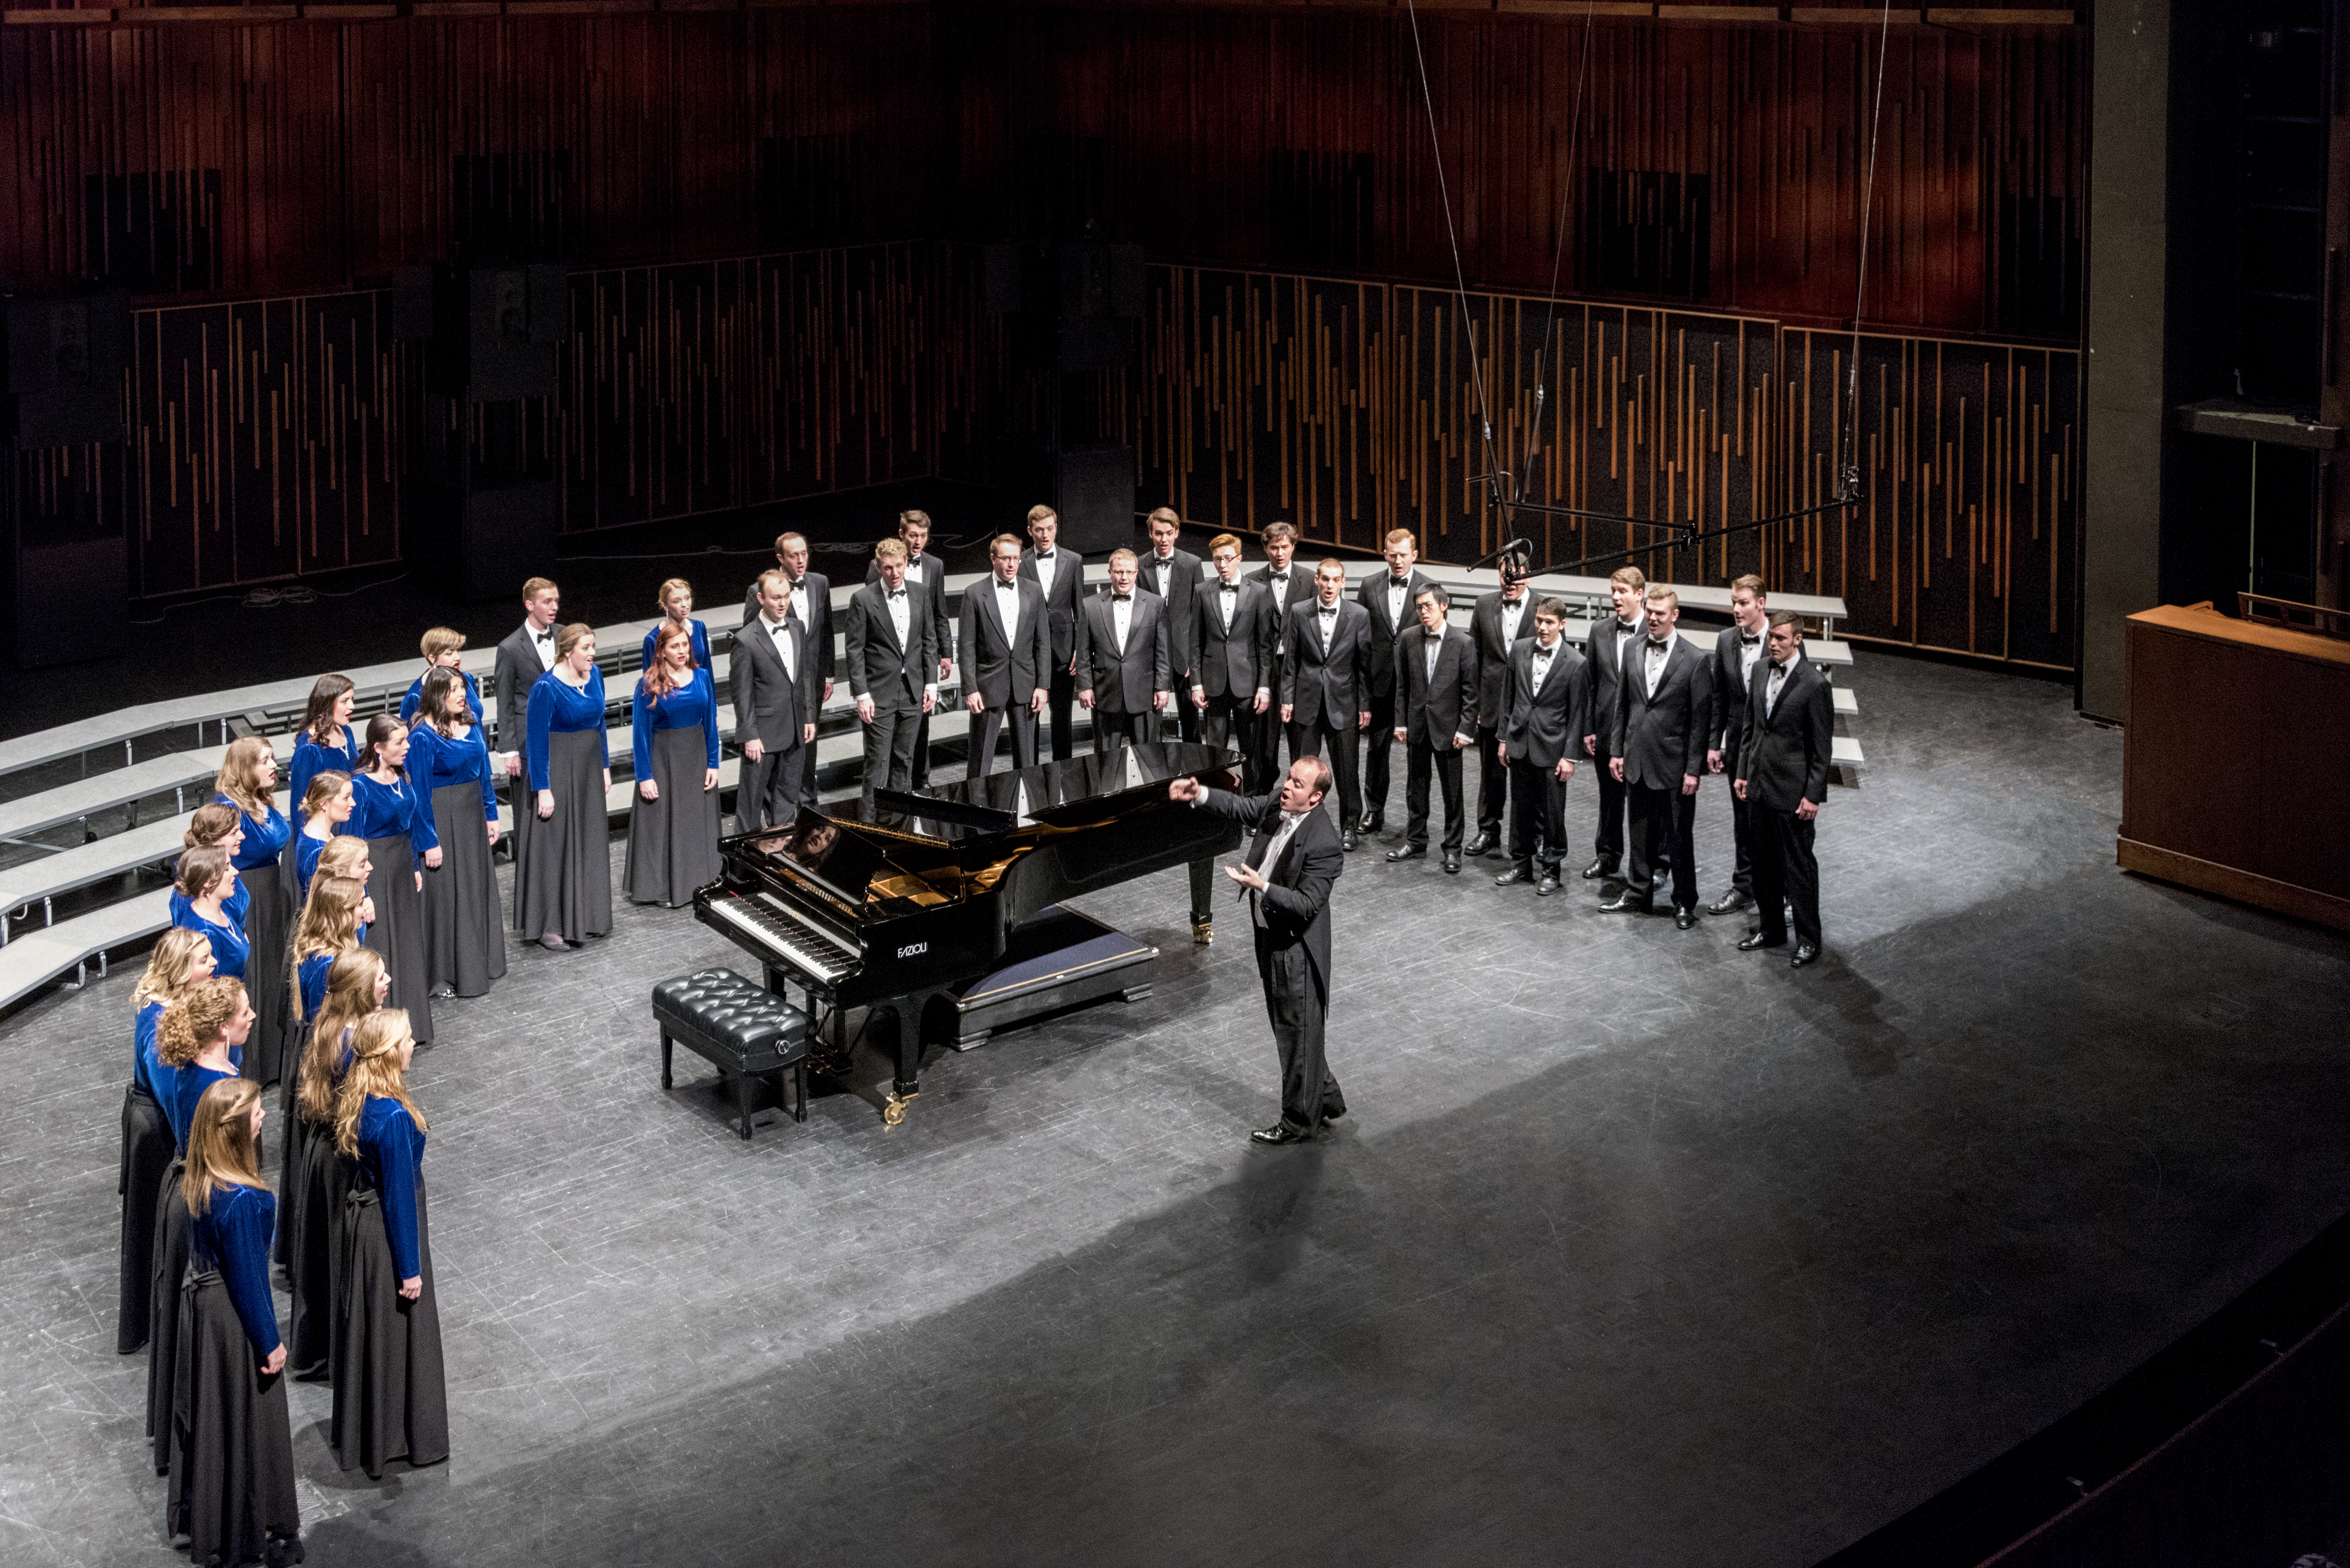 BYU Singers with conductor Andrew Crane at BYU de Jong Concert Hall 2017. Photo by Sandefur Schmidt.